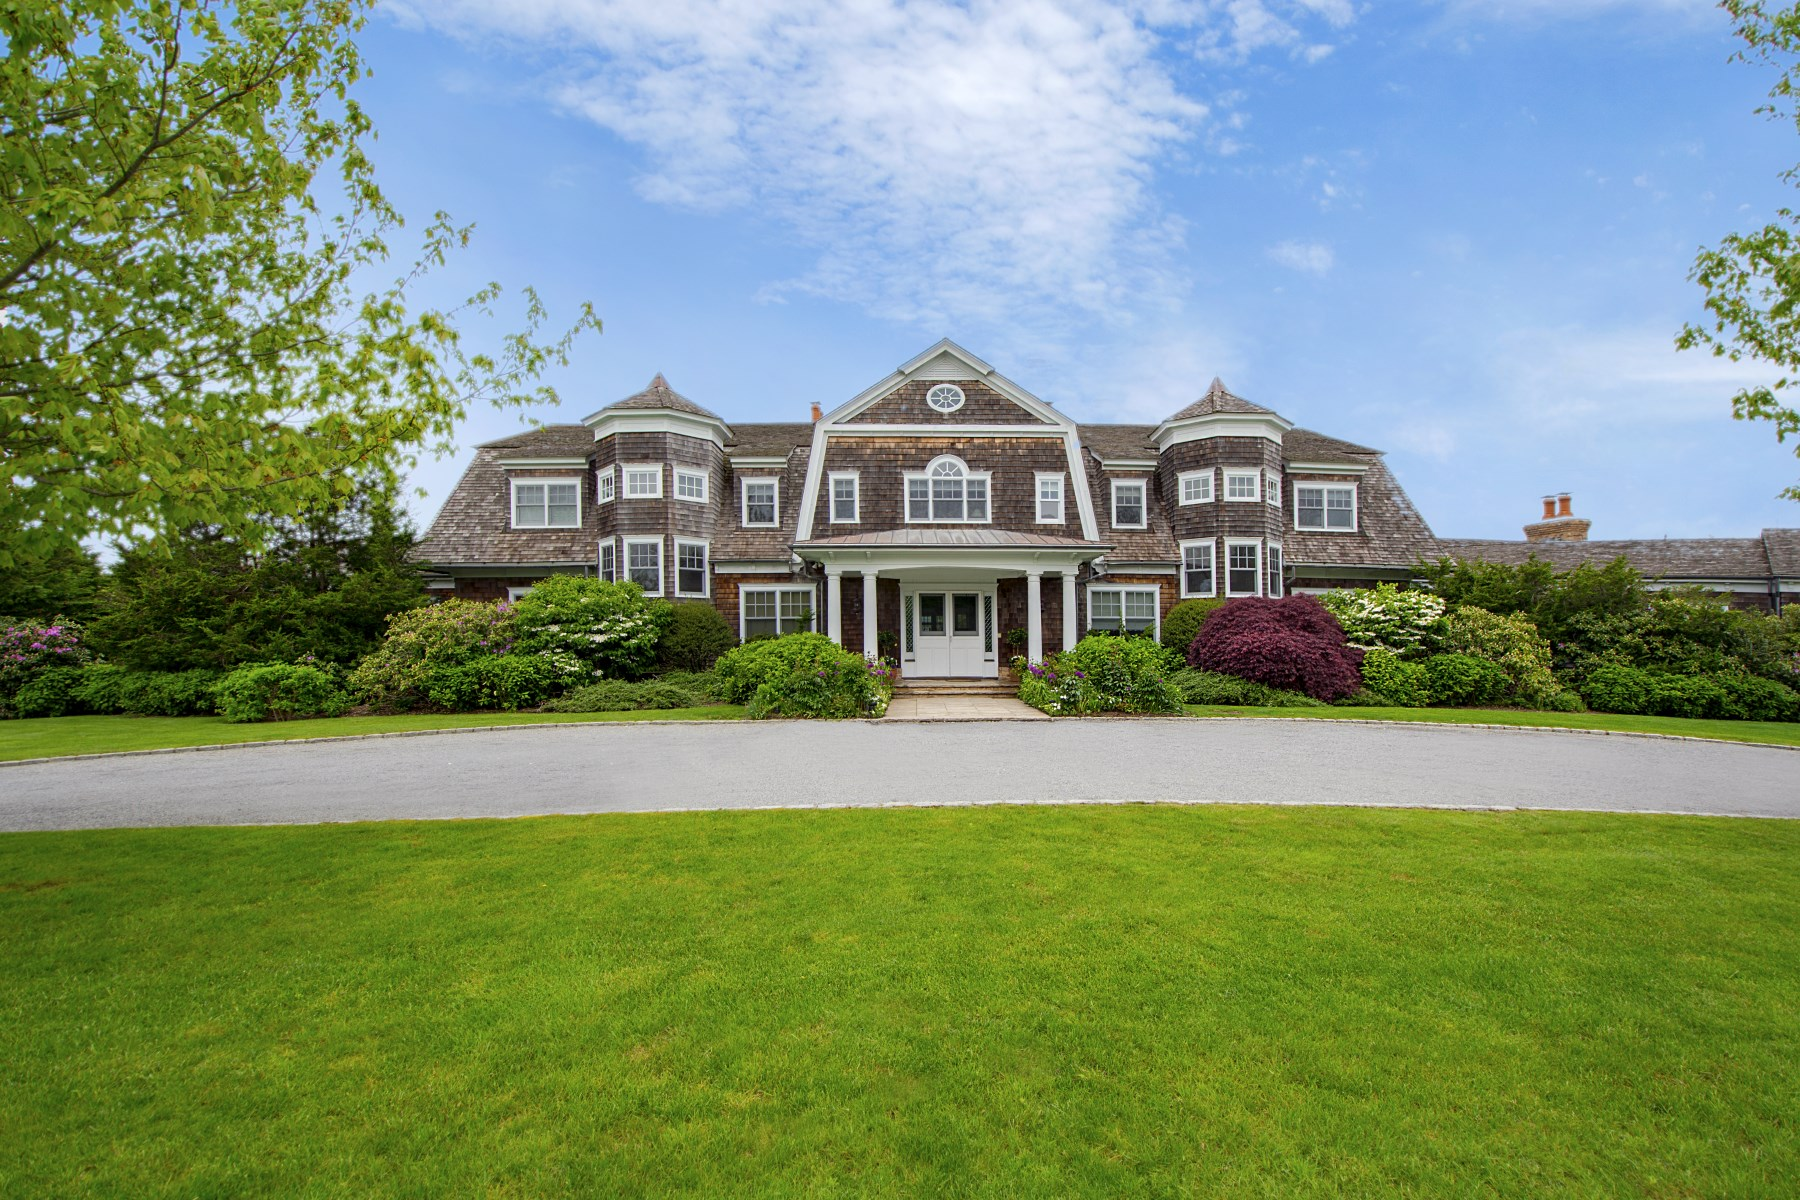 Single Family Home for Rent at Estate Style Home on Ocean Road 704 Ocean Road Bridgehampton, New York 11932 United States